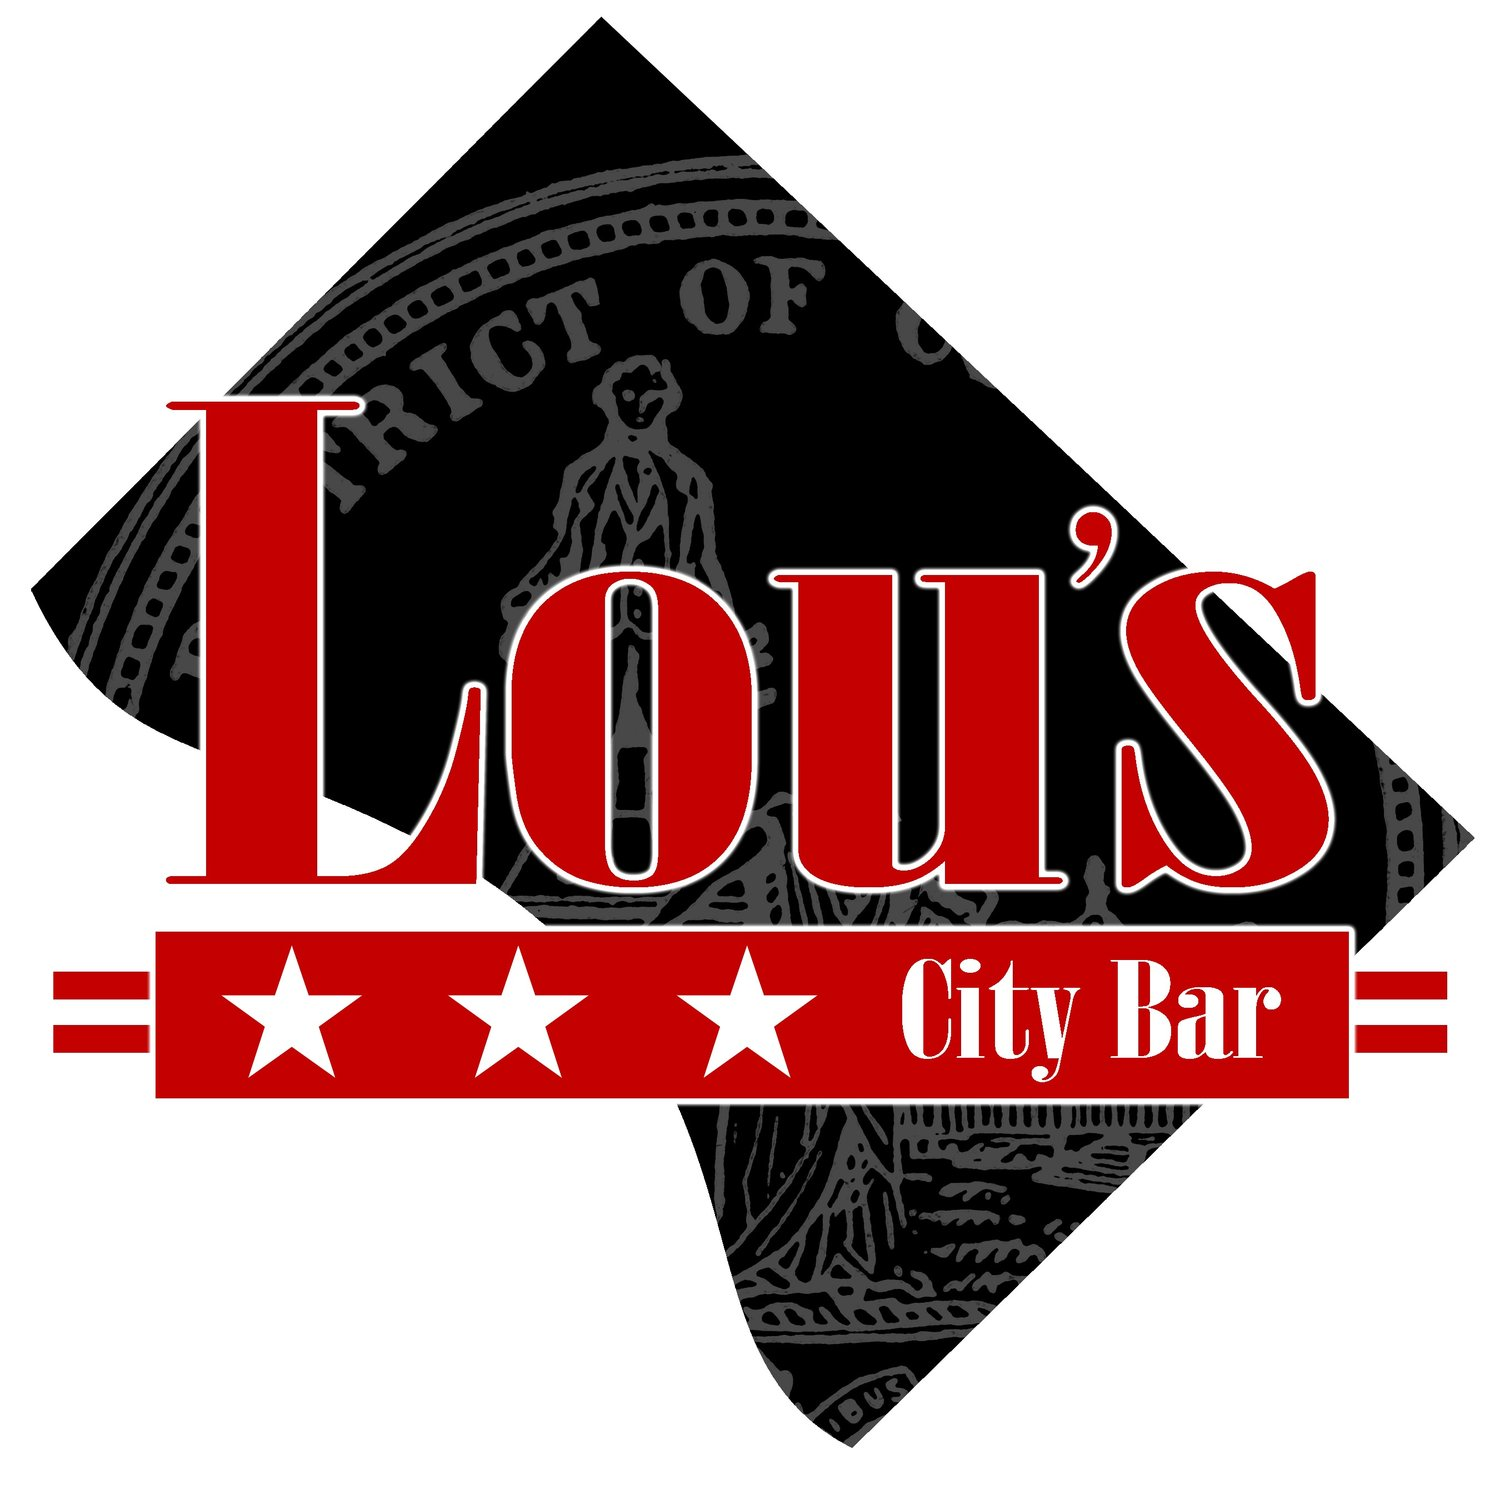 Lou's City Bar